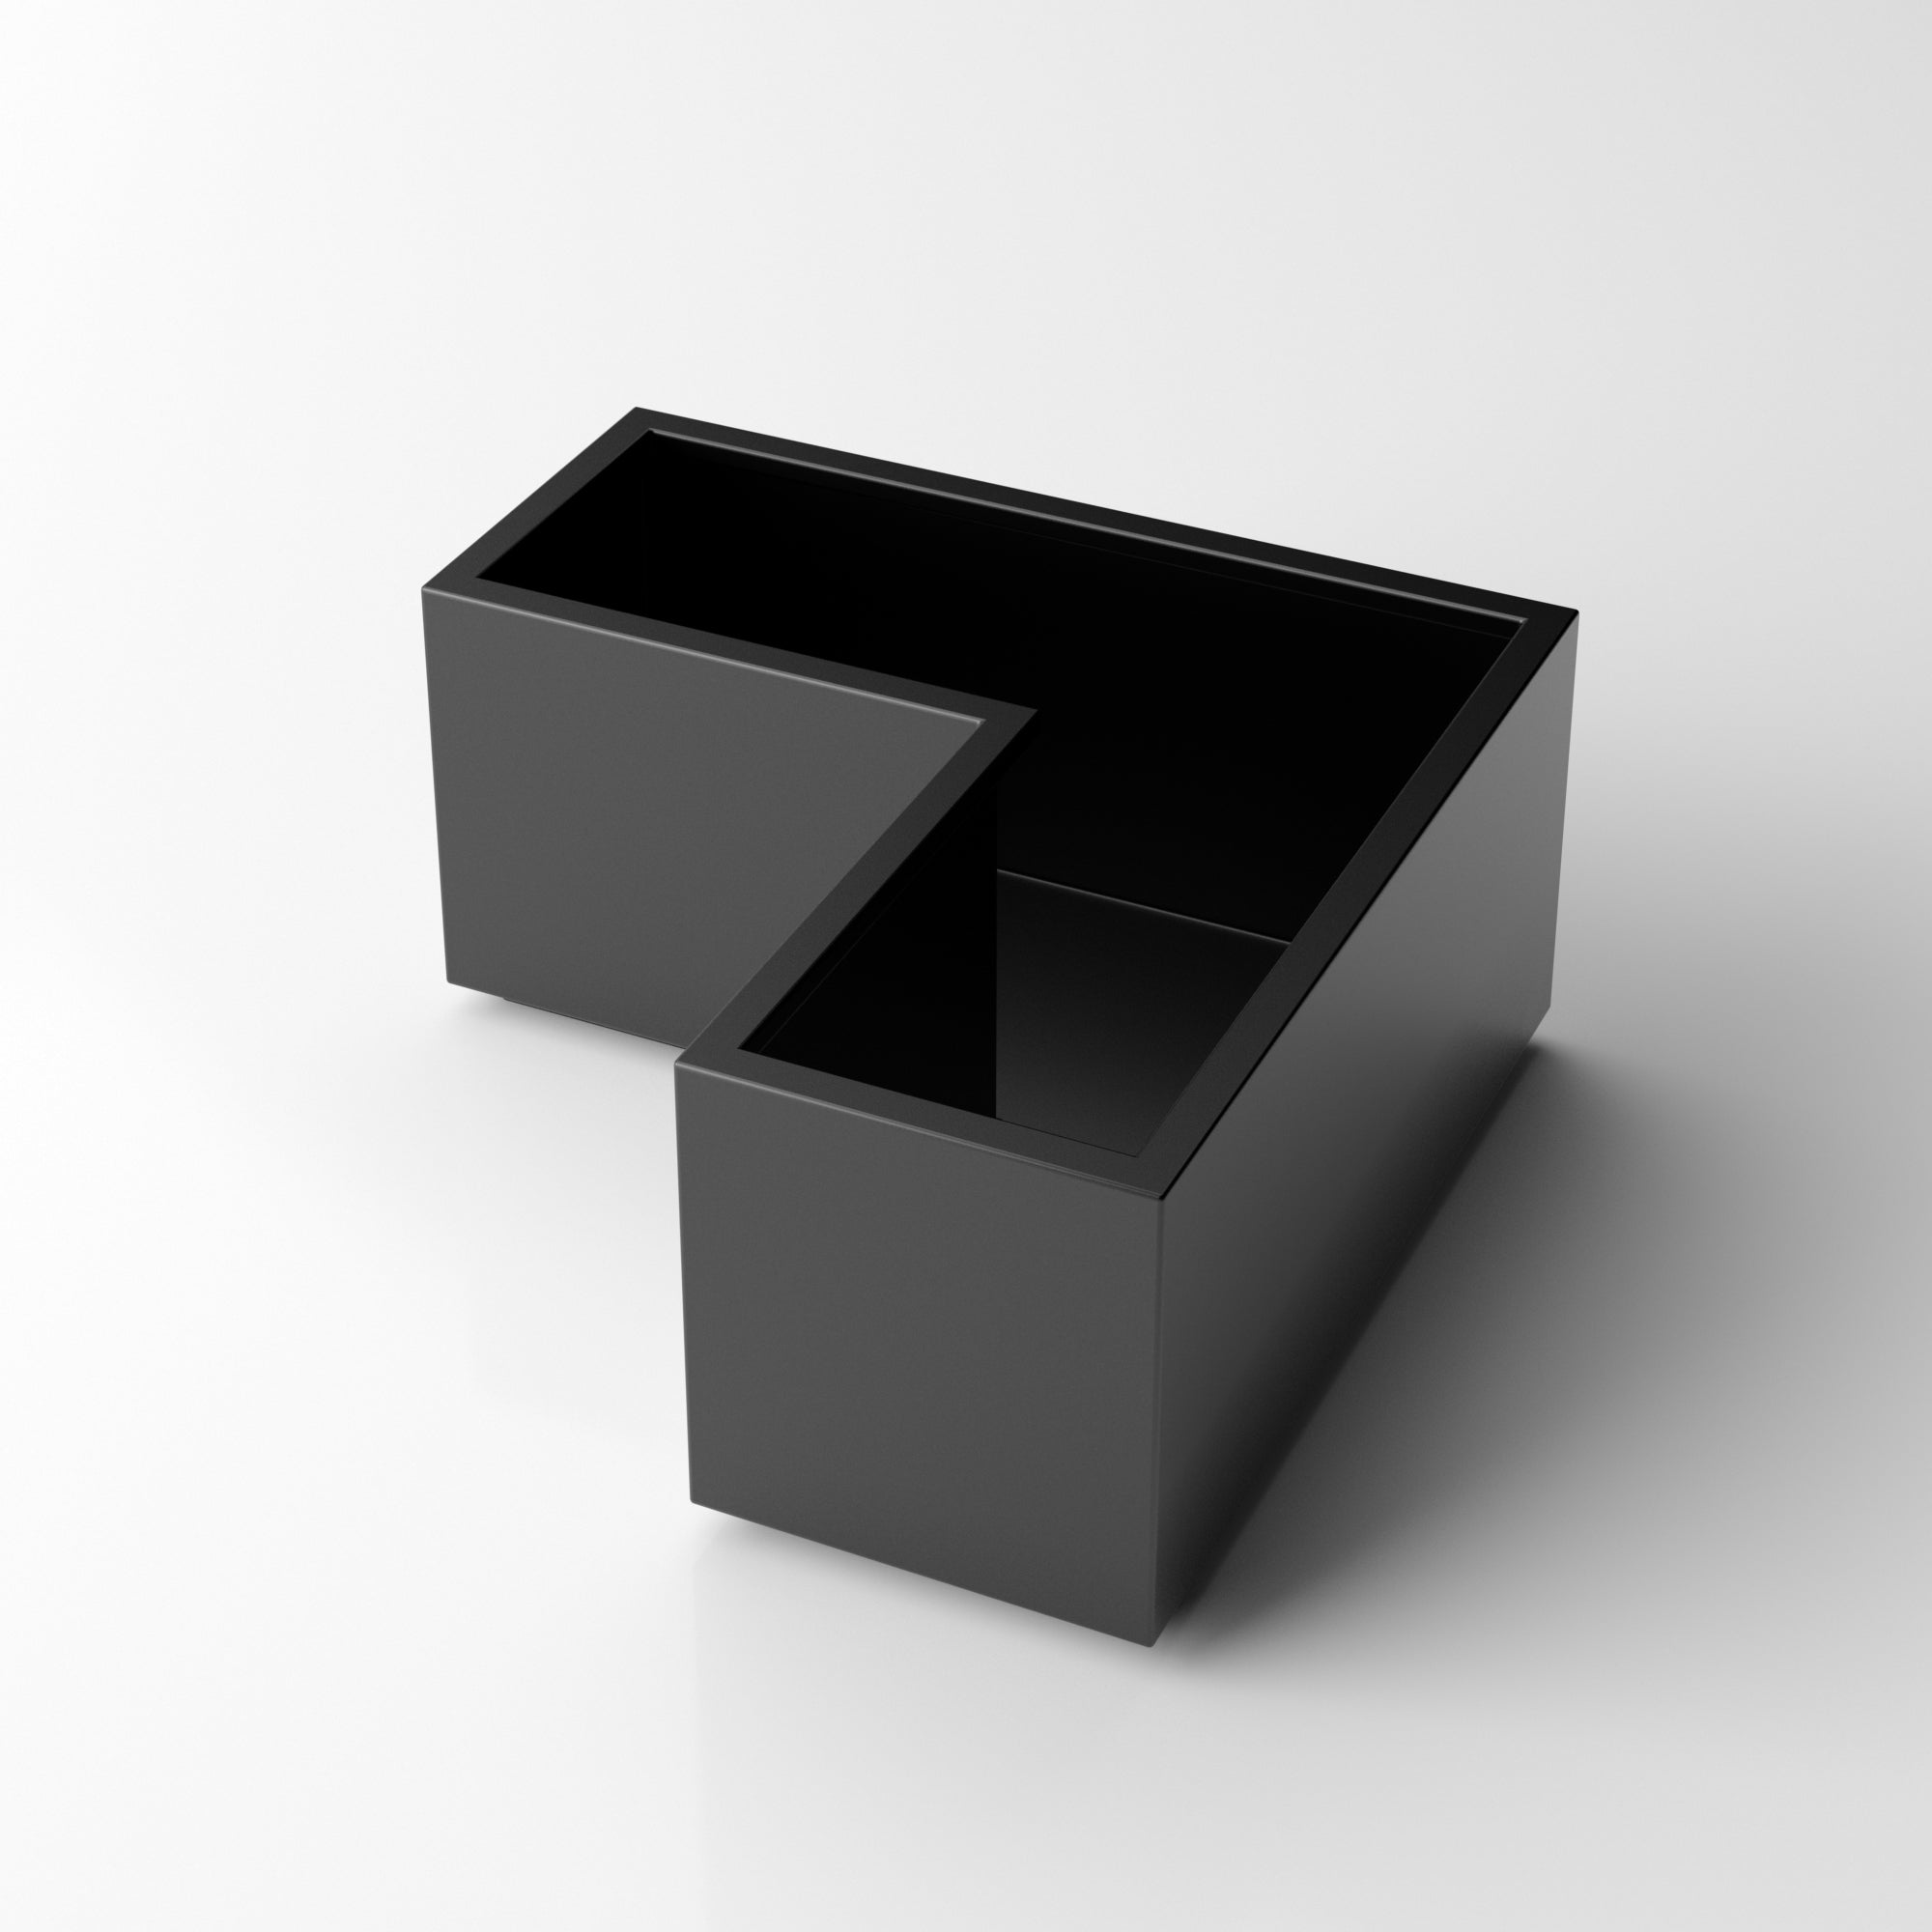 Metallic Series Corner Box Planter